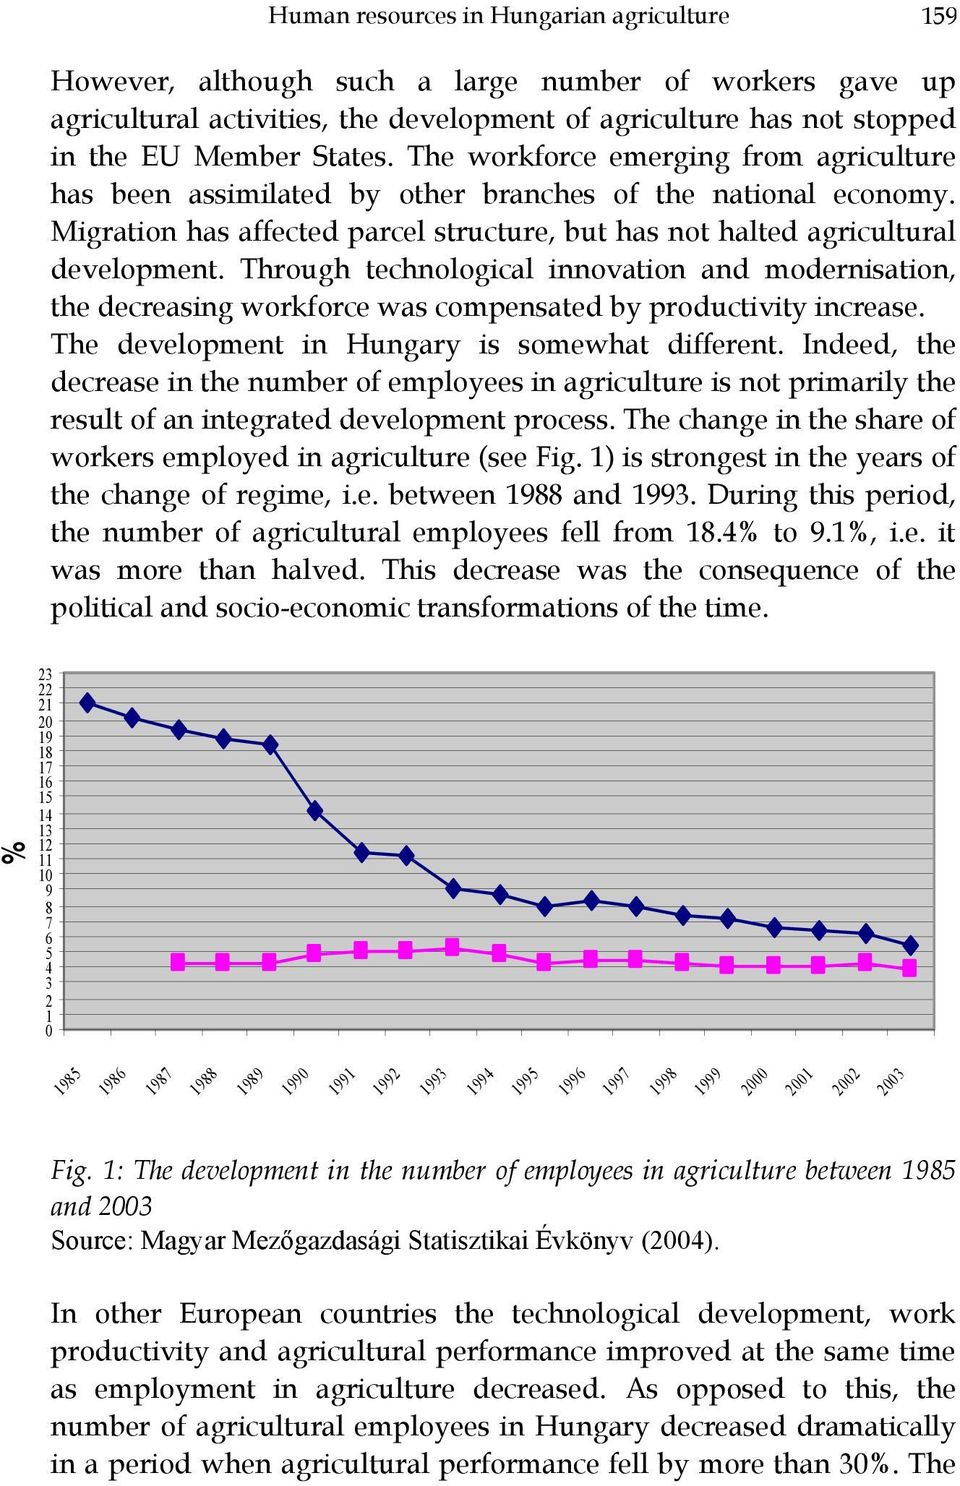 Through technological innovation and modernisation, the decreasing workforce was compensated by productivity increase. The development in Hungary is somewhat different.